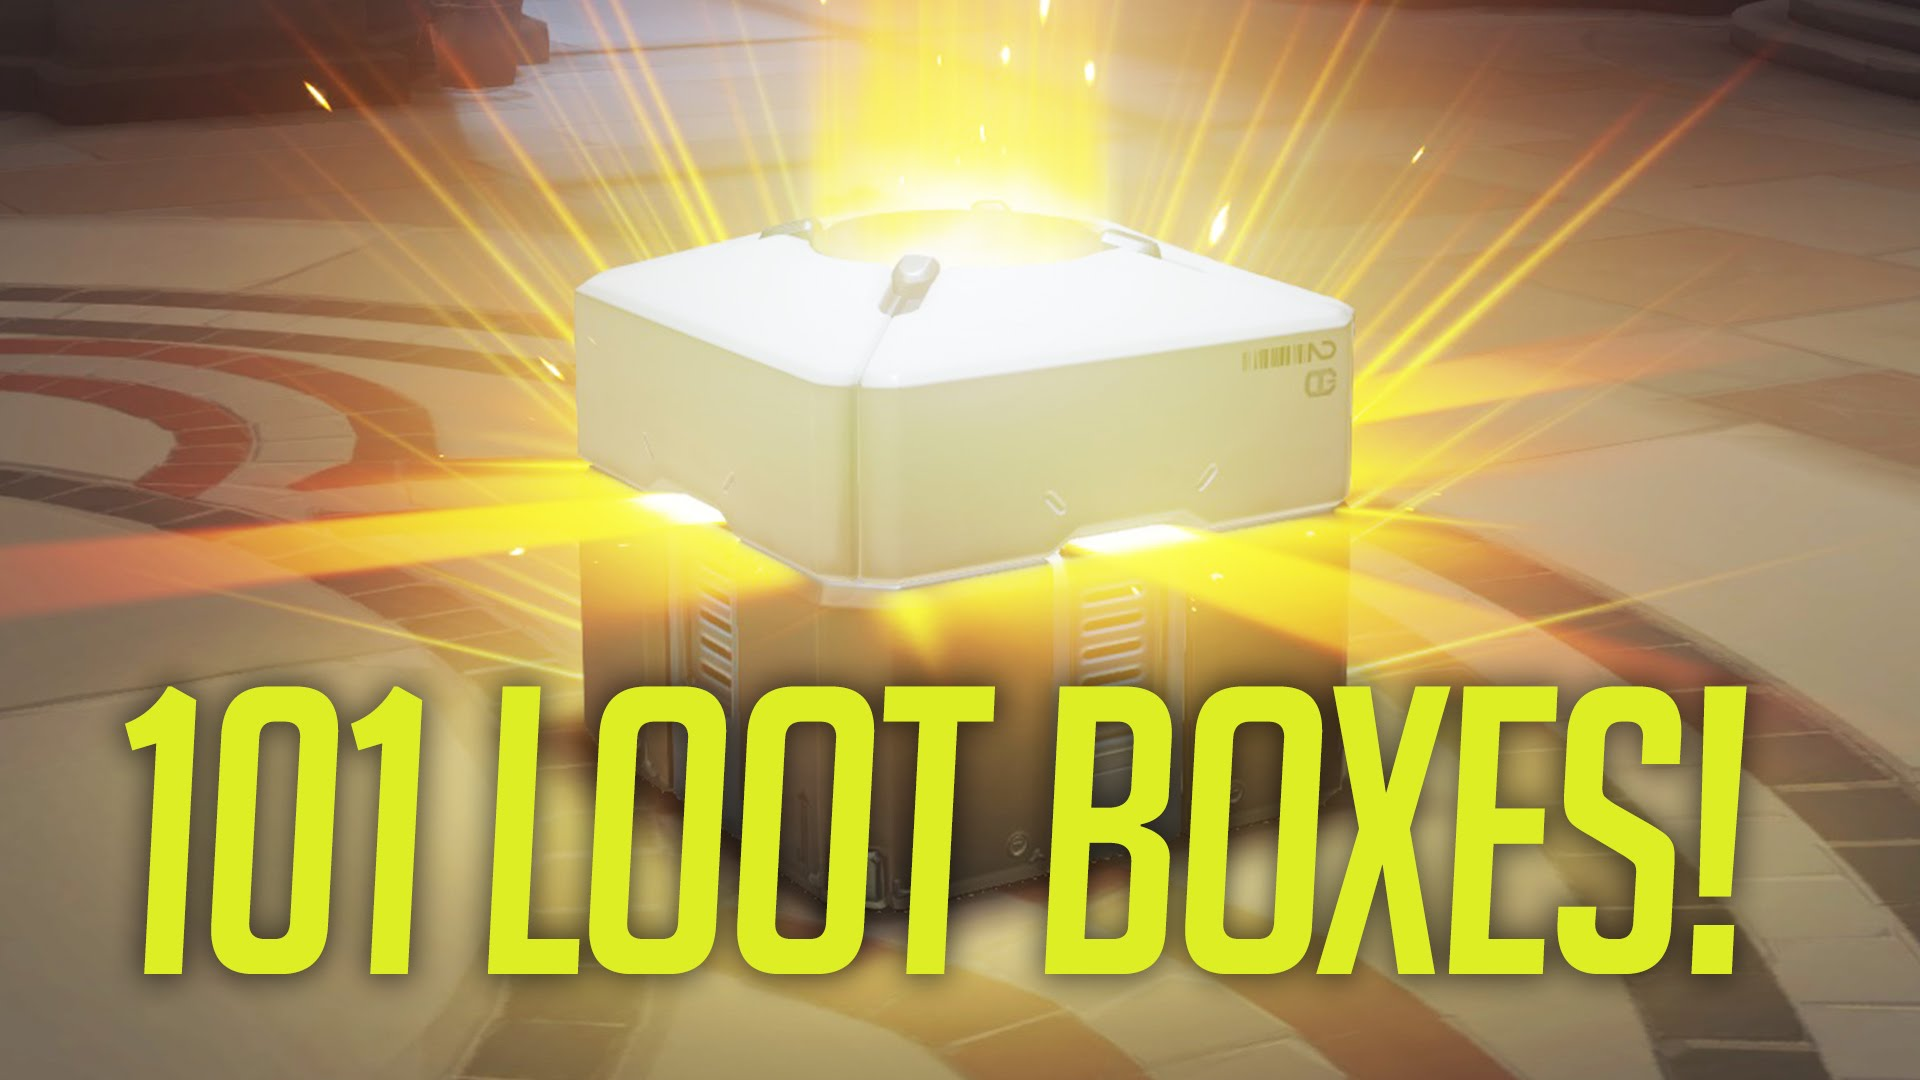 opencritic-just-took-a-stand-against-loot-boxes-and-its-a-good-thing-social.jpg